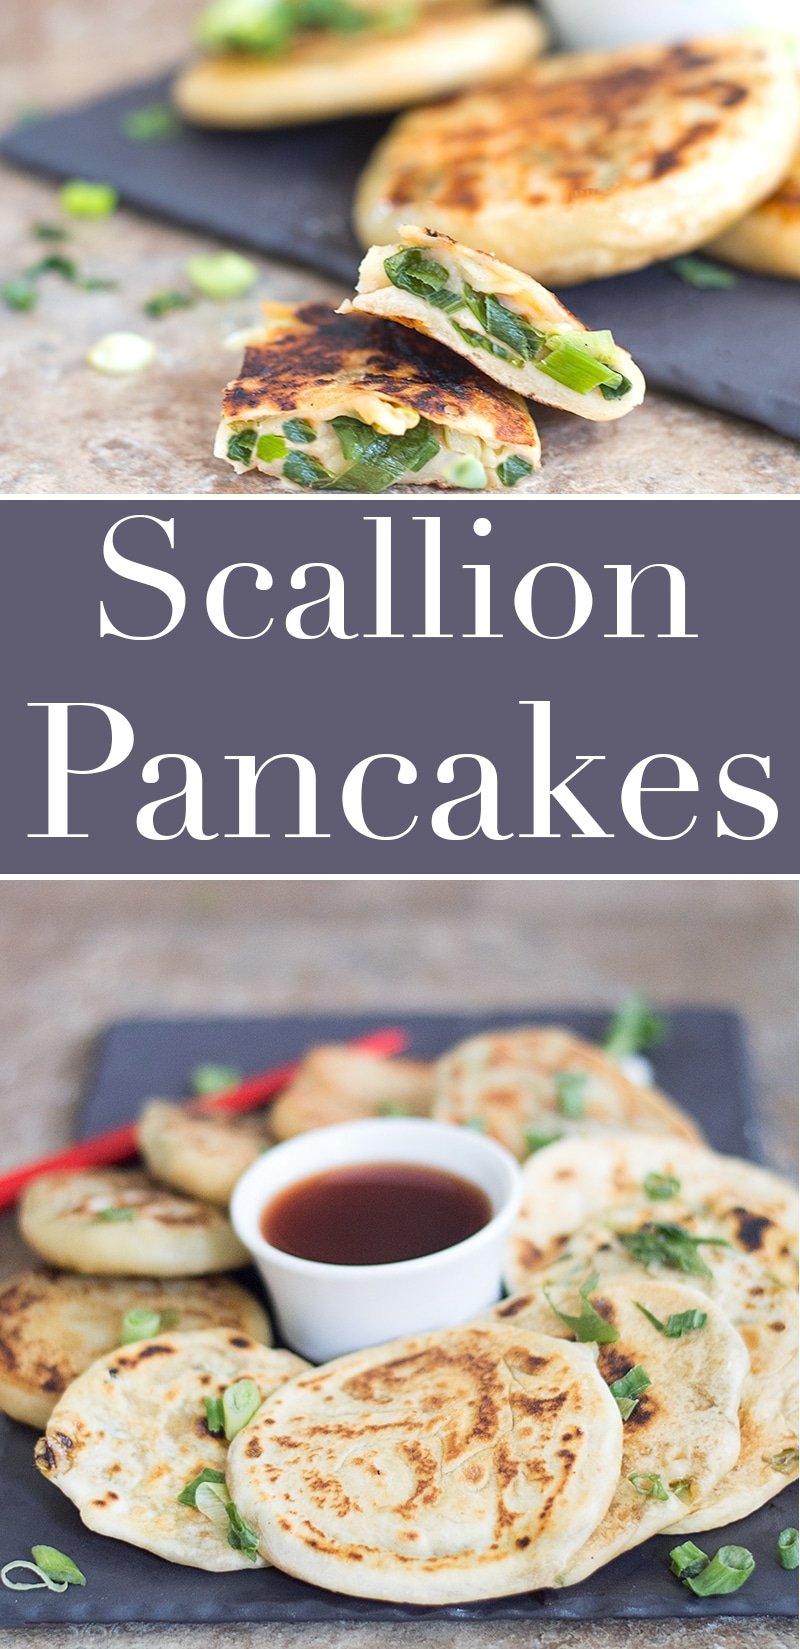 With only a few ingredients, you can make this soft and easy Scallion Pancakes for breakfast or brunch. The secret to these soft pancakes is yogurt